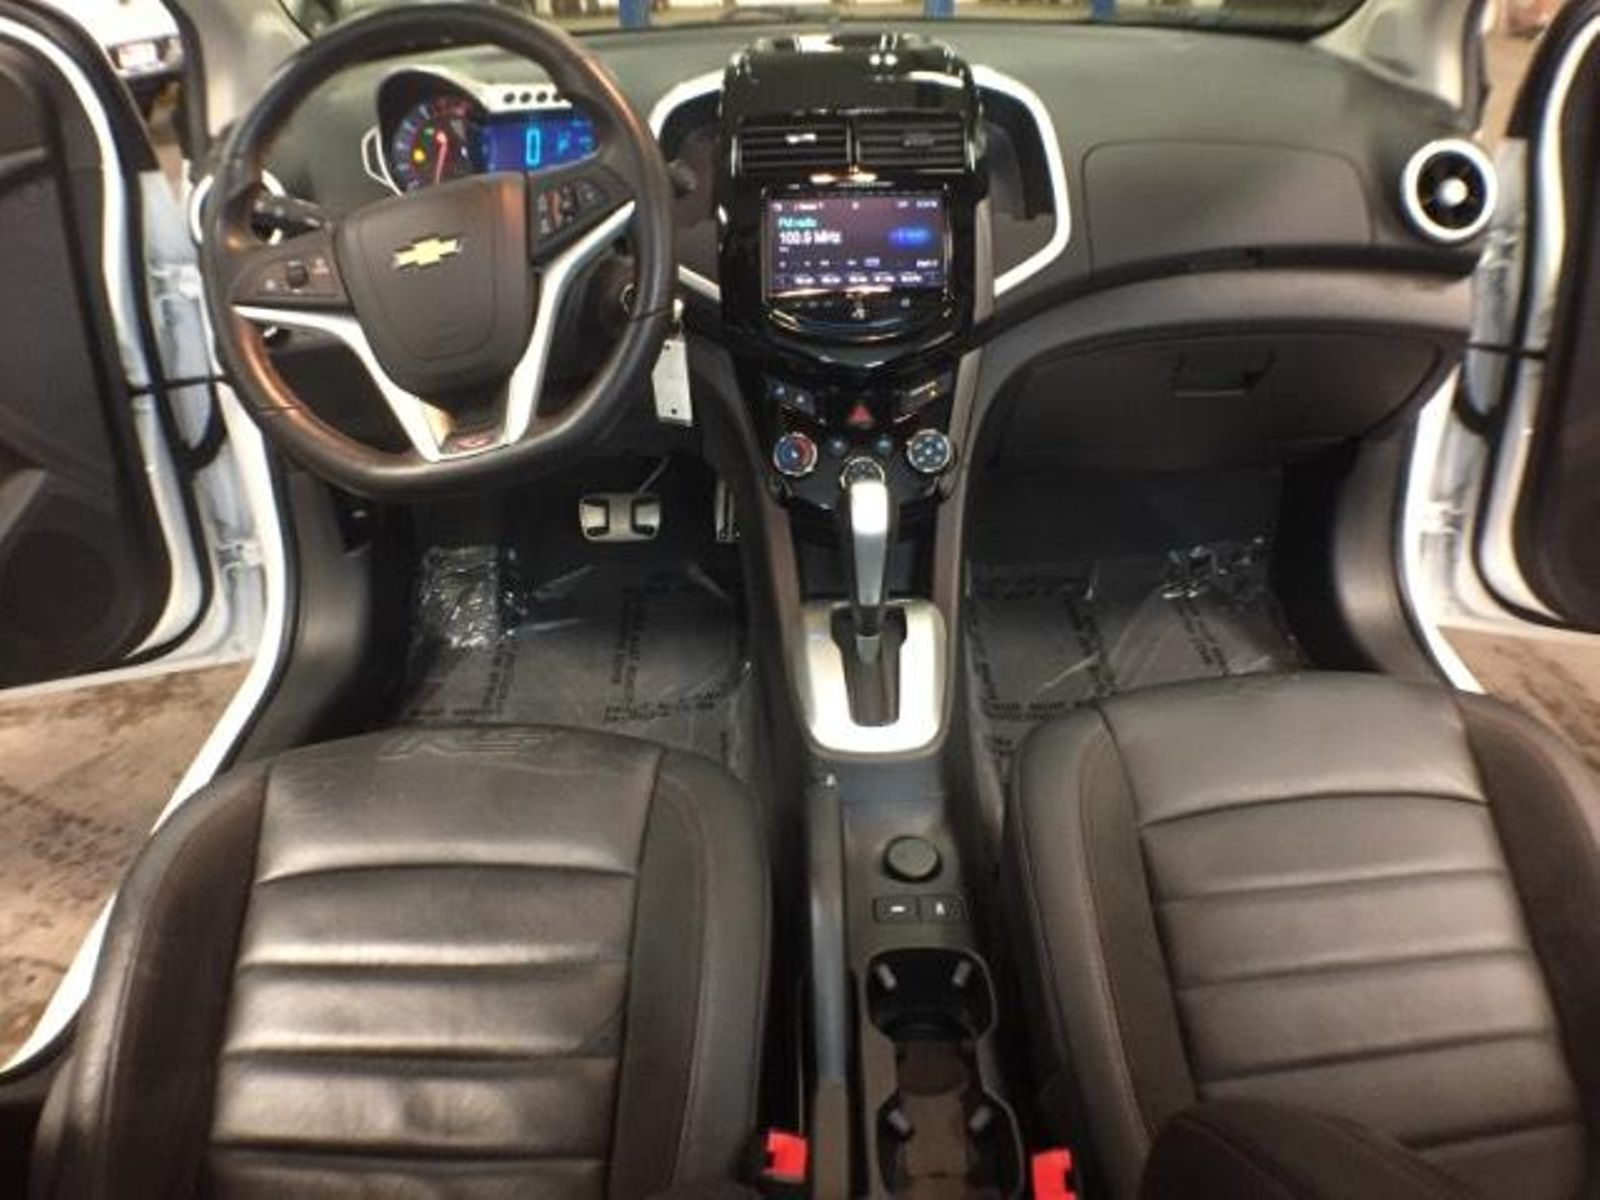 sonic chevrolet app cheap chevy rs here the car article bringgo gps go nav for guides orig